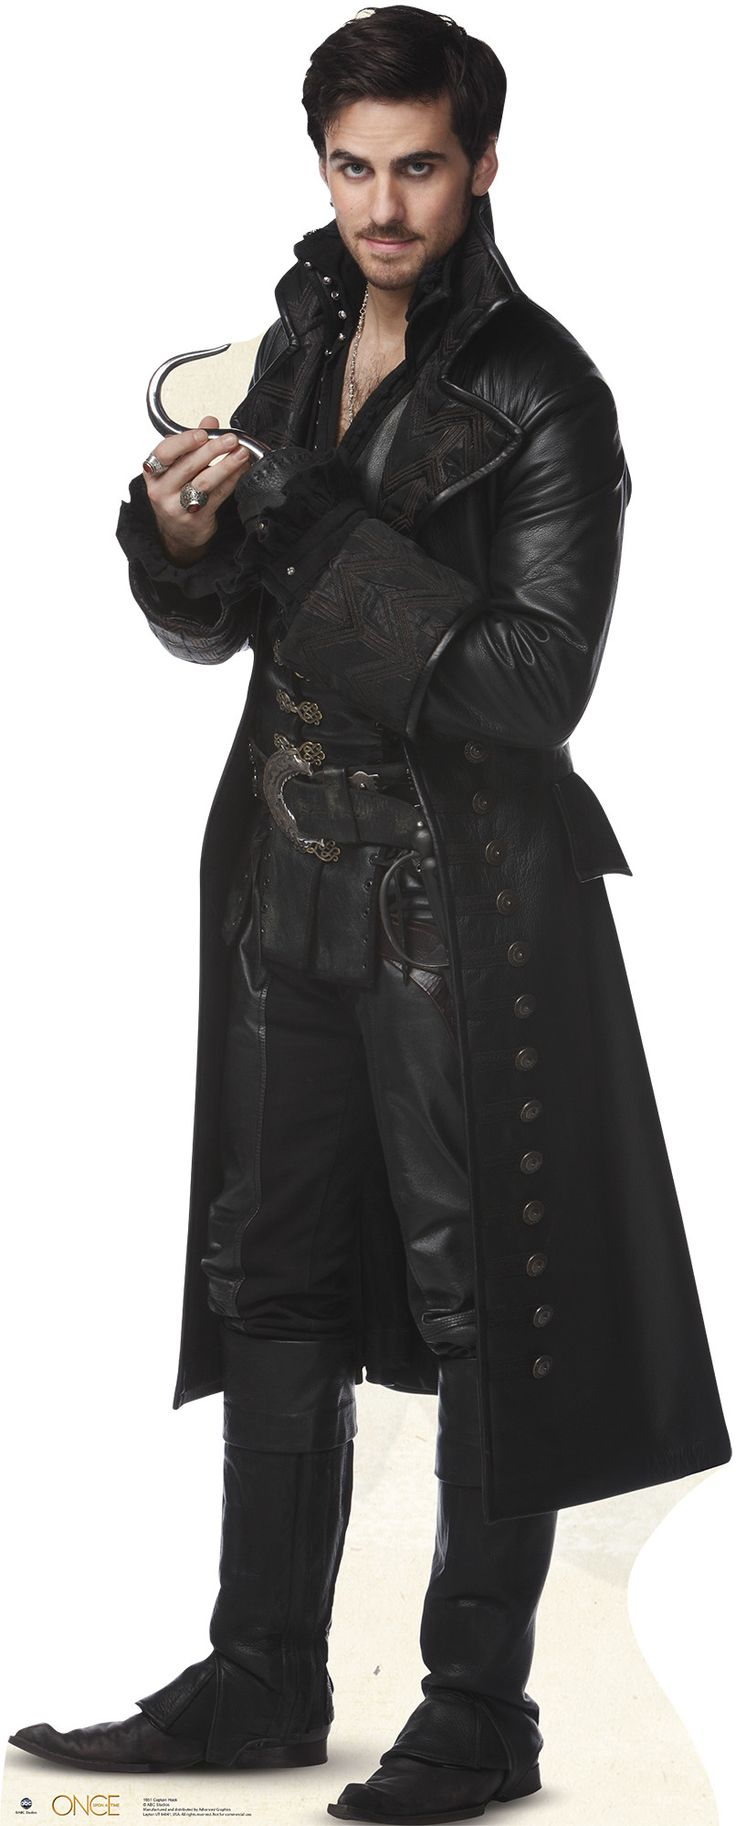 hook from once upon a time Once upon a time killian jones captain hook cosplay costume is a character on abc's once upon a time she debuts in the first episode of the first season.